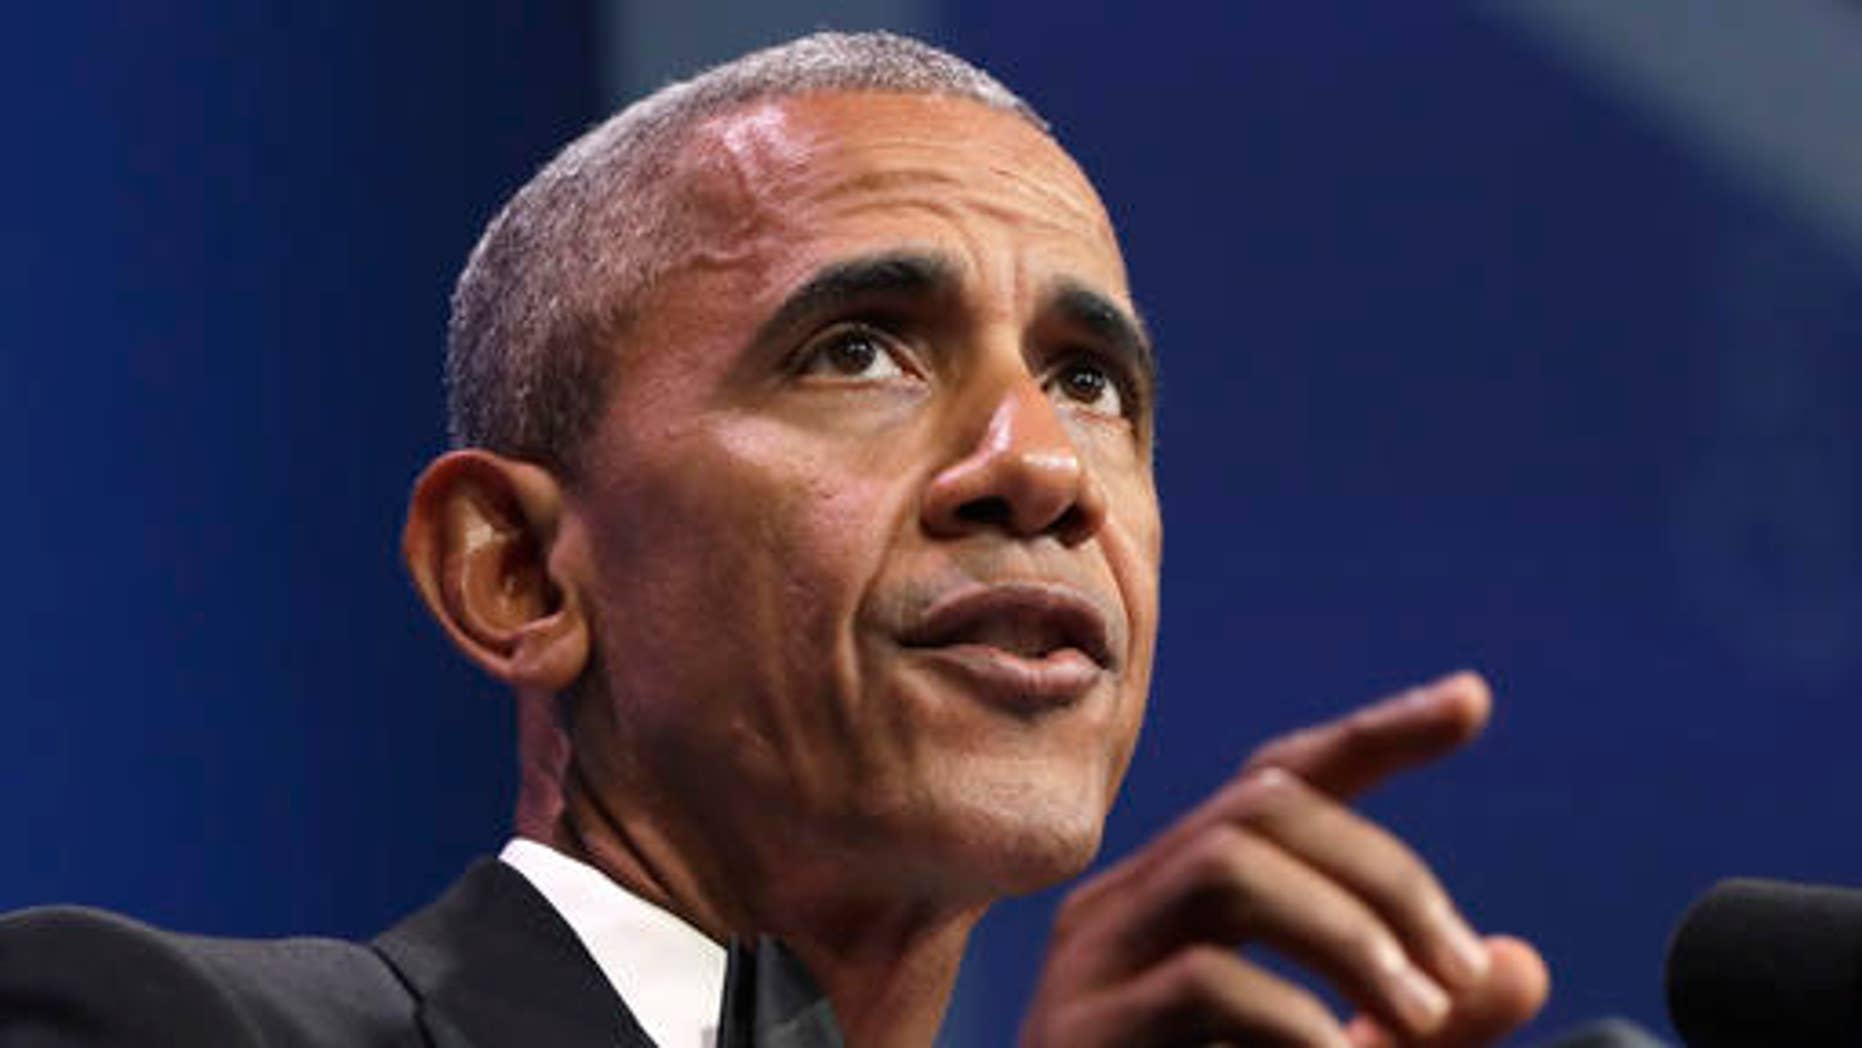 President Barack Obama speaks at the 39th Annual Congressional Hispanic Caucus Institute Public Policy Conference and awards gala, Thursday, Sept. 15, 2016, in Washington. (AP Photo/Jacquelyn Martin)